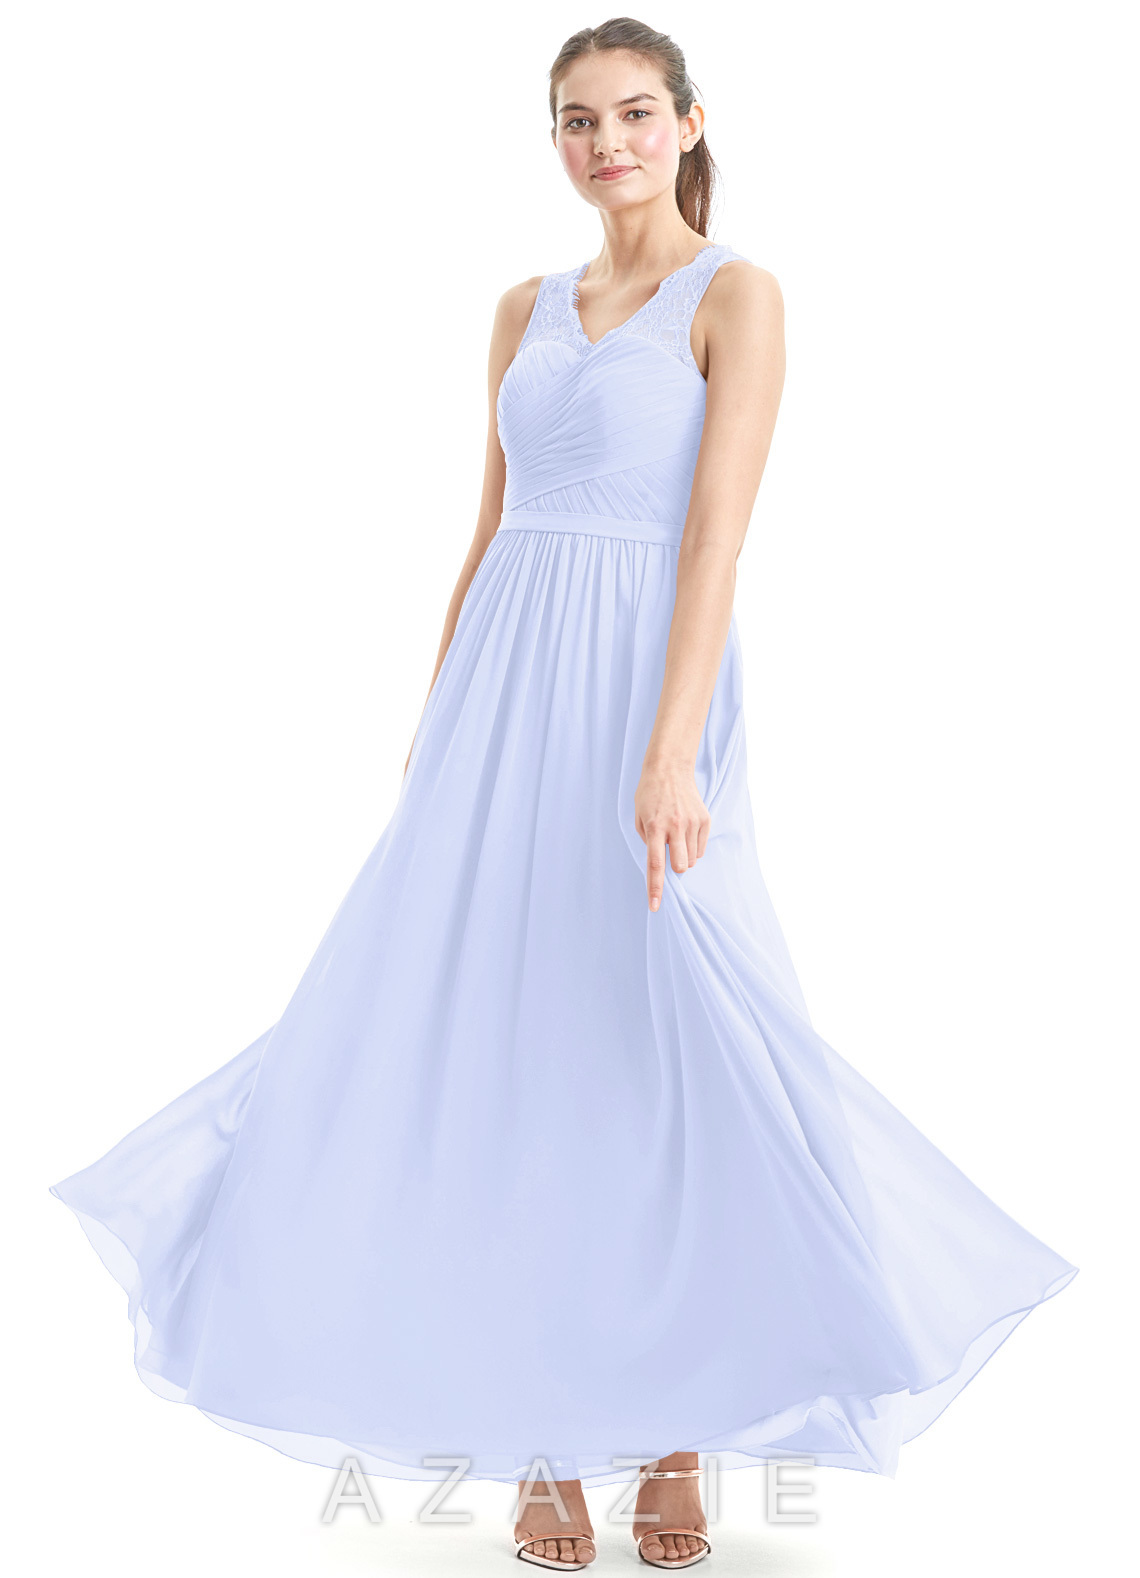 62ddb9d7d9f9 Azazie Beverly Bridesmaid Dress | Azazie